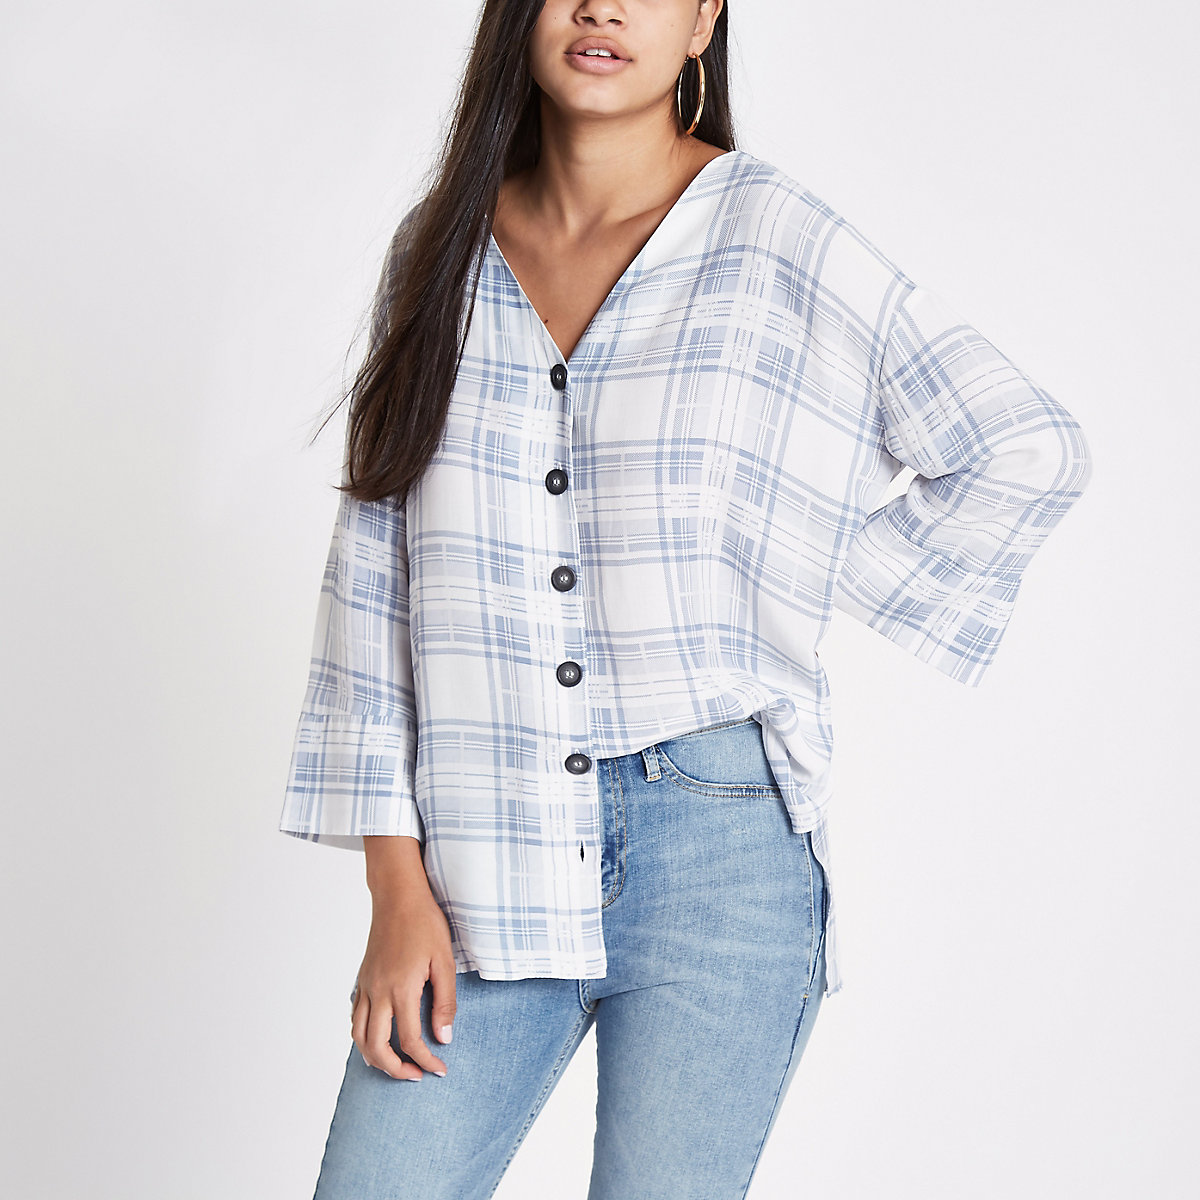 55422d63b1f616 Blue check button front bar back blouse - Shirts - Tops - women